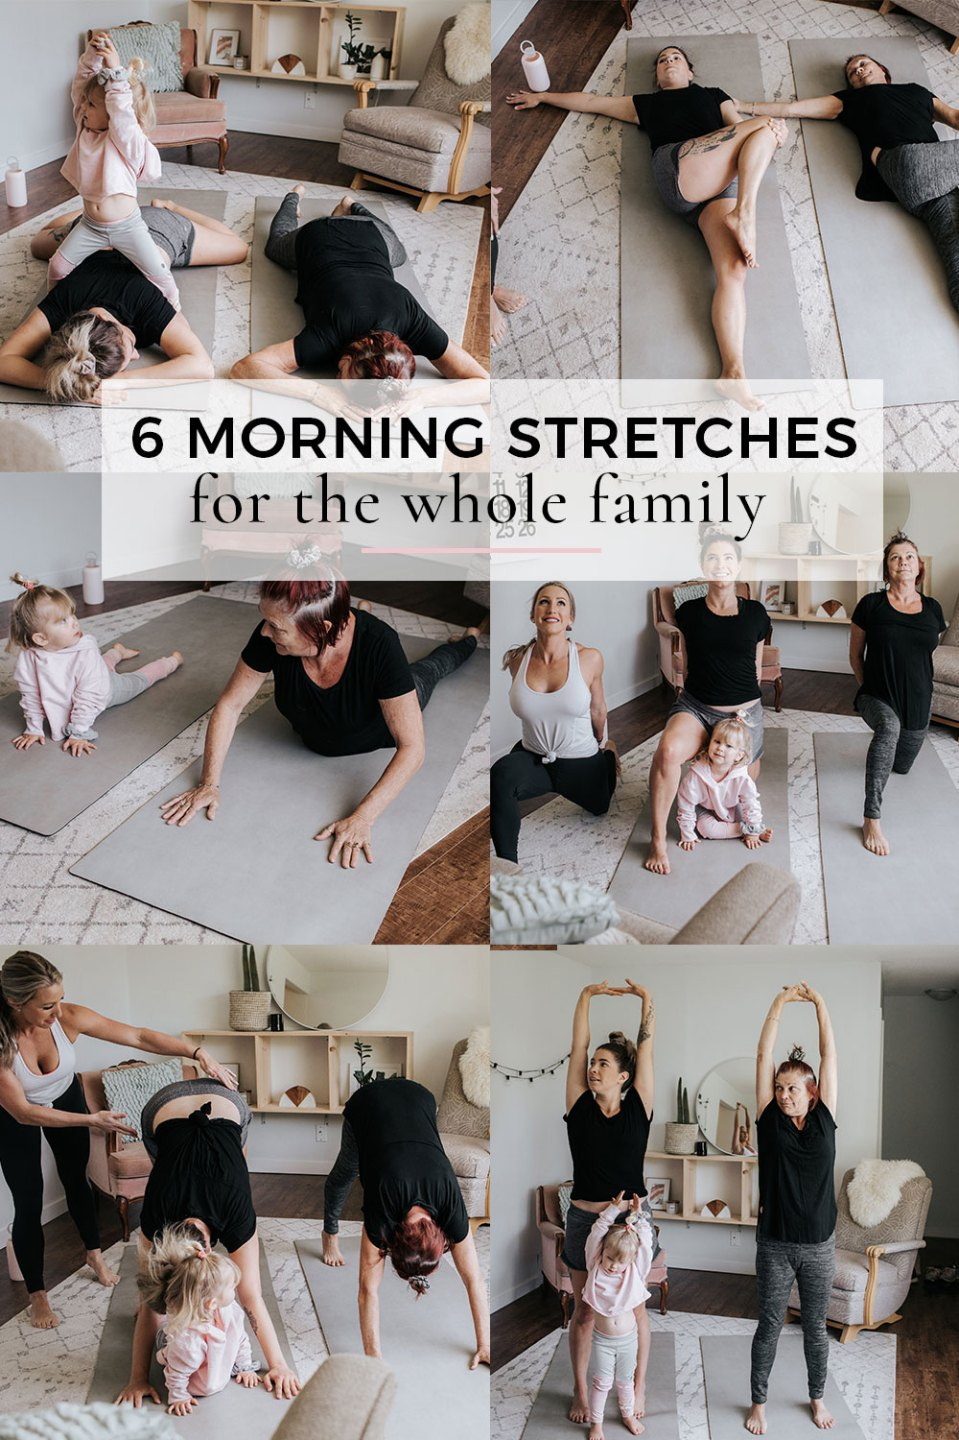 6 Morning Stretches for the Whole Family